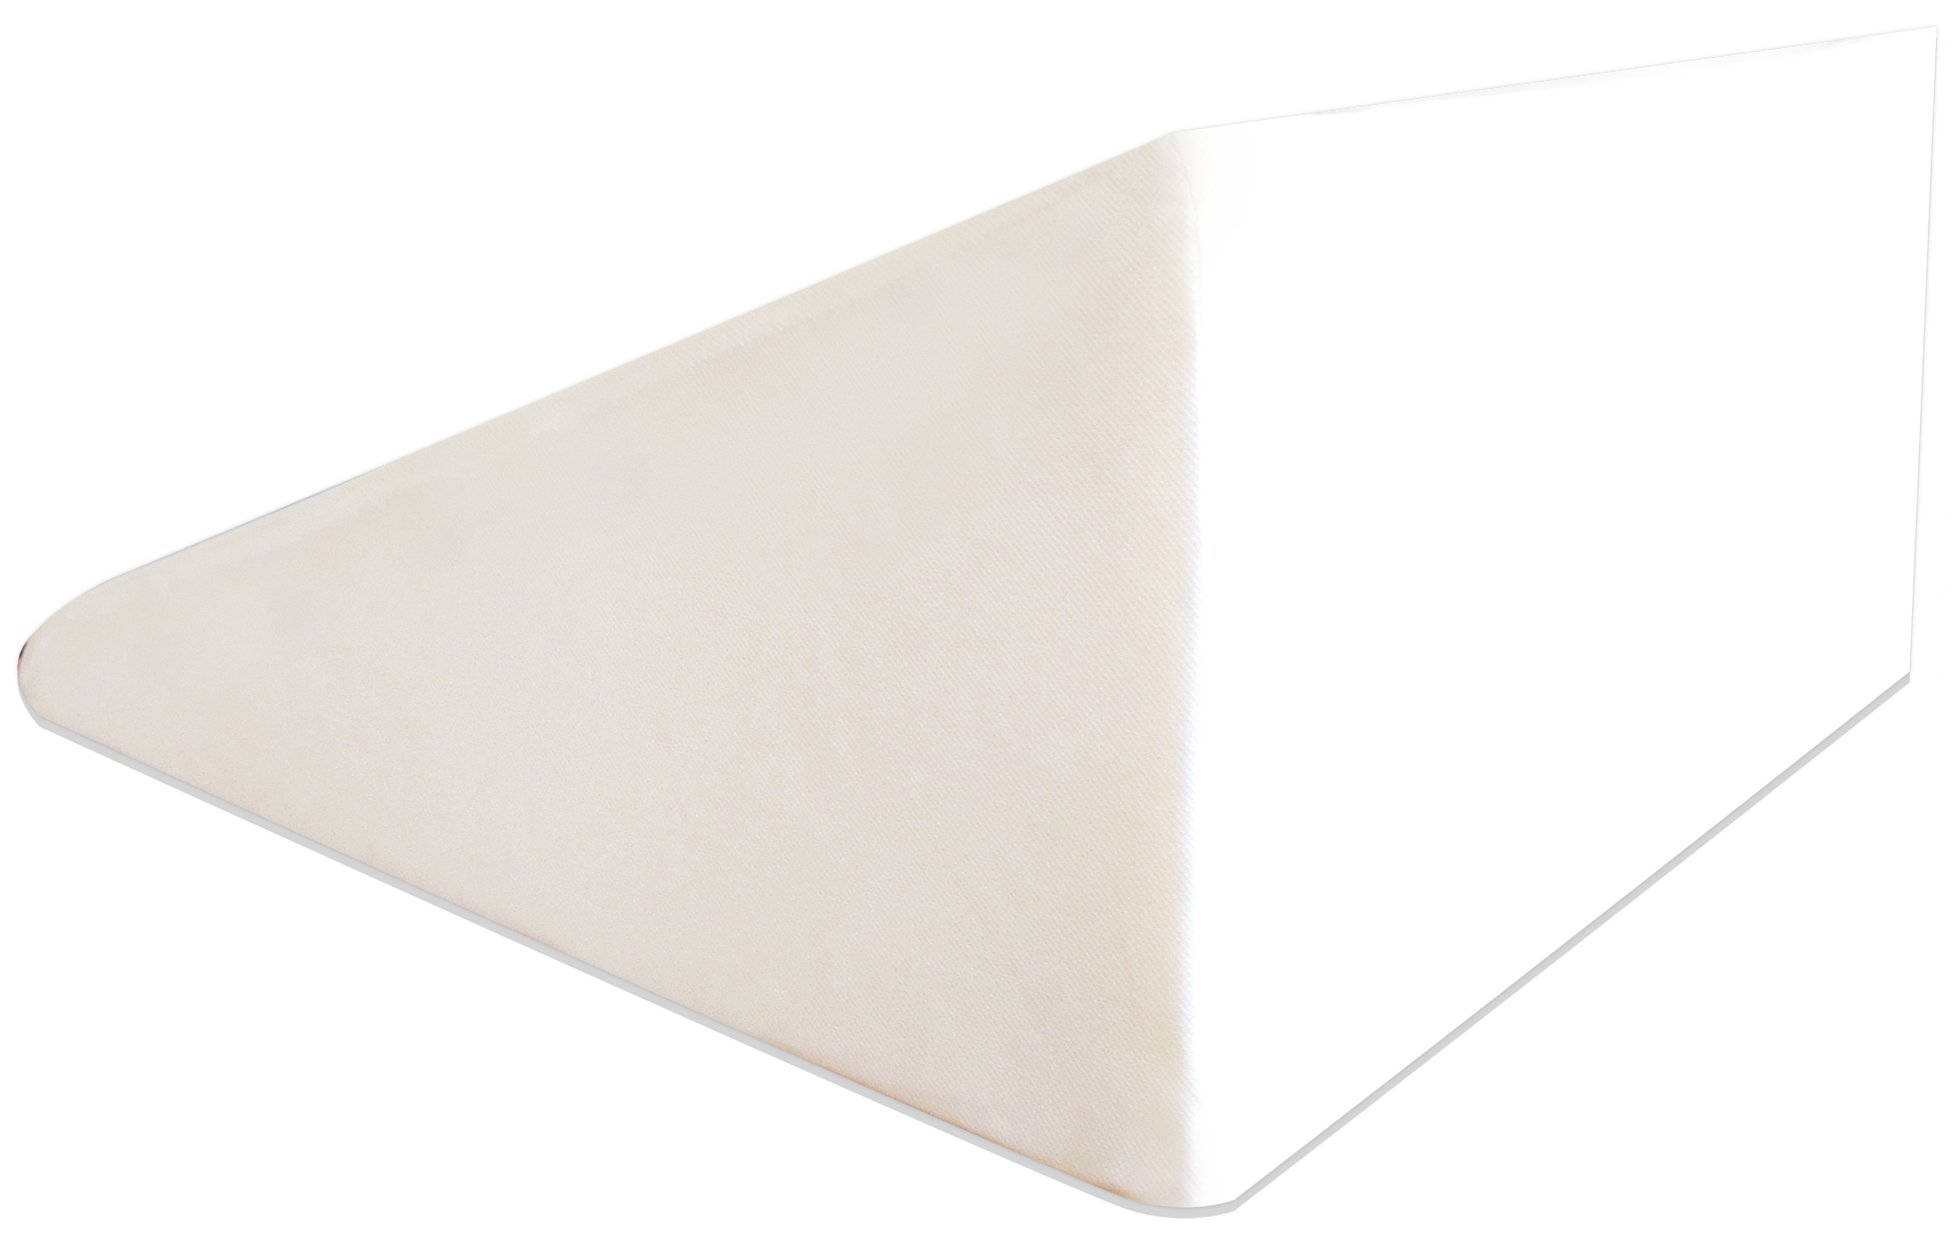 BalanceFrom Wedge Foam Wedge Bed Support Pillow with Memory Foam Top and Removable Cover (26'' x 25'' x 12'')